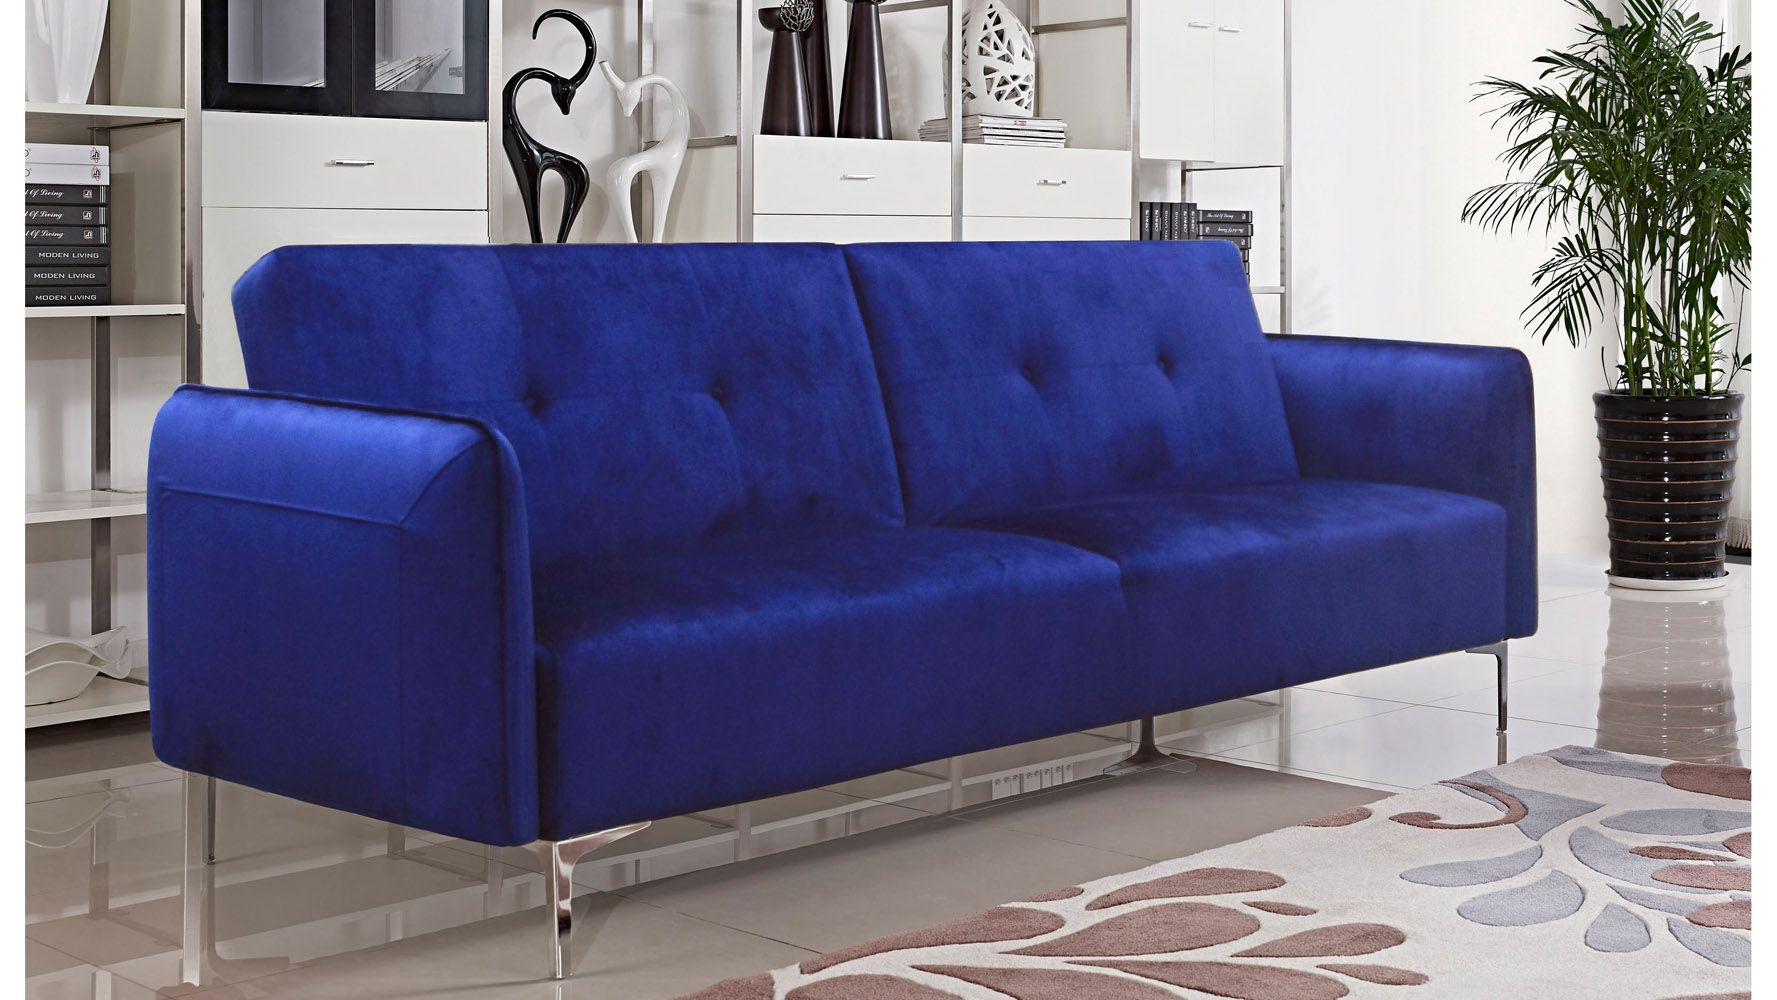 electric blue velvet sofa calico corners review navy bea modern digs